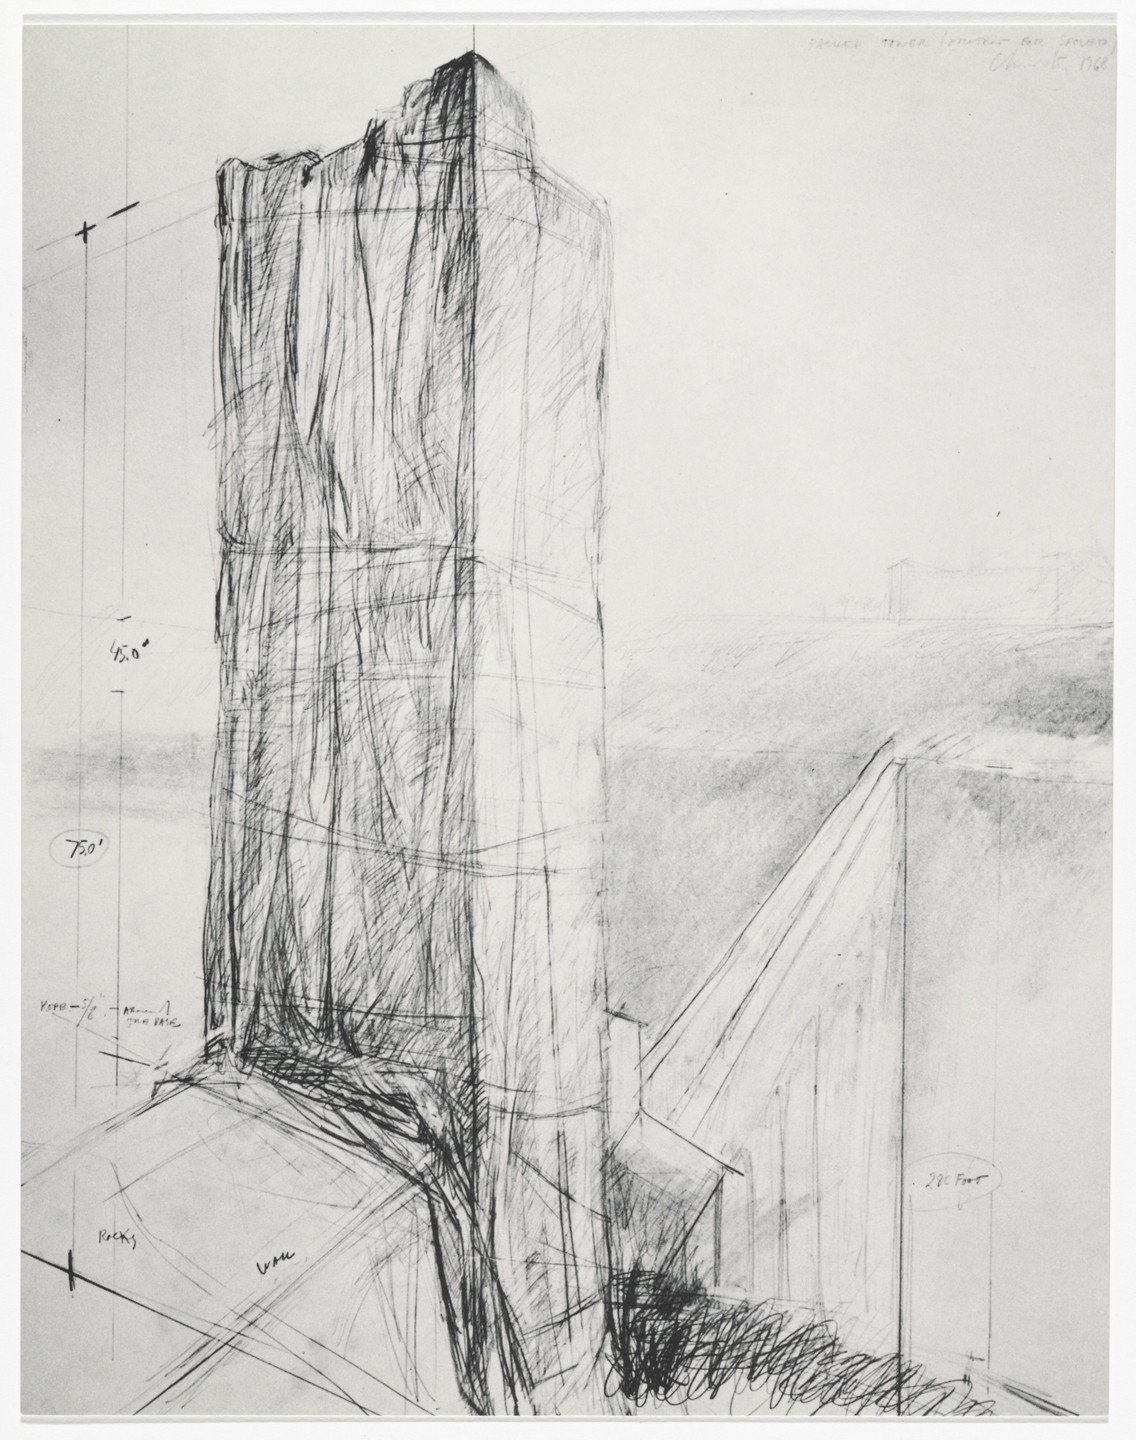 Christo. Packed Tower – Spoleto (Proposals & Projects) from Artists & Photographs. 1968, published 1970